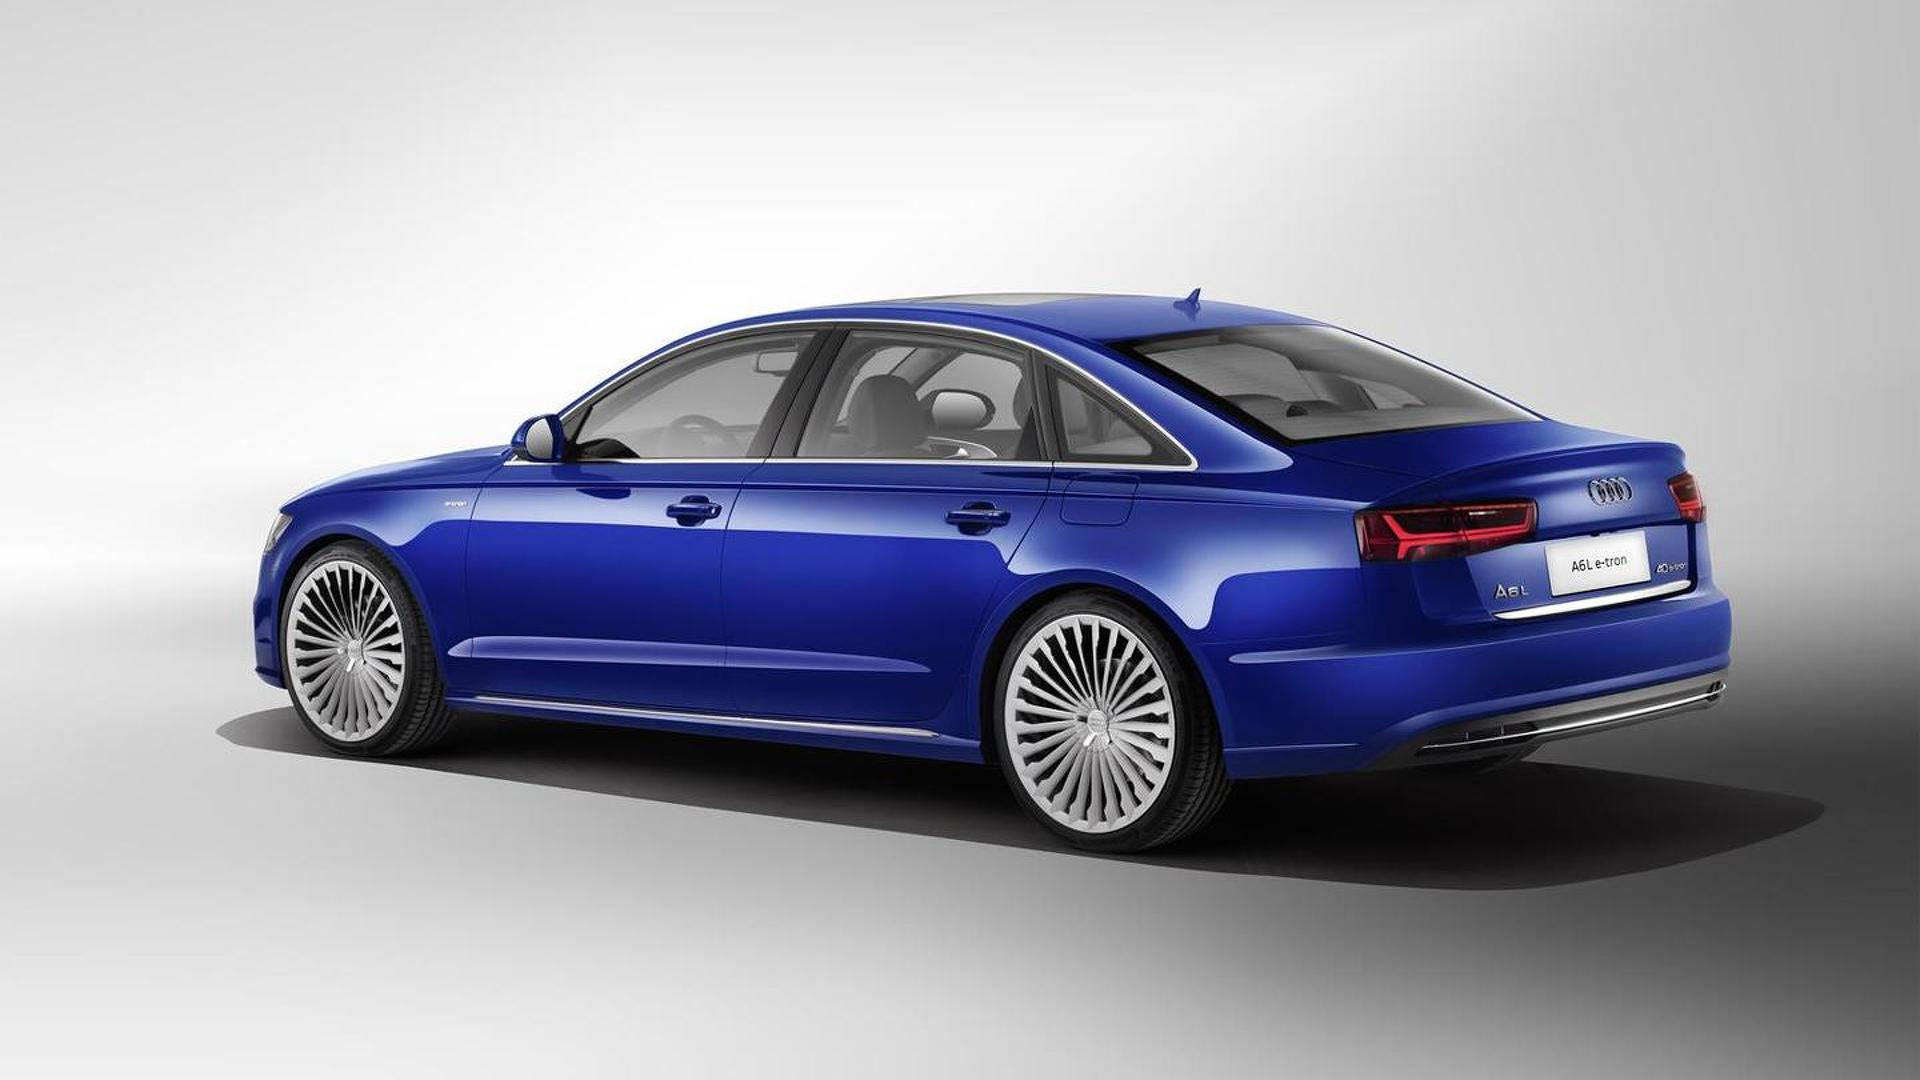 Audi A6 L E Tron Plug In Hybrid Launching China With 50 Km Electric Range And 245 Ps